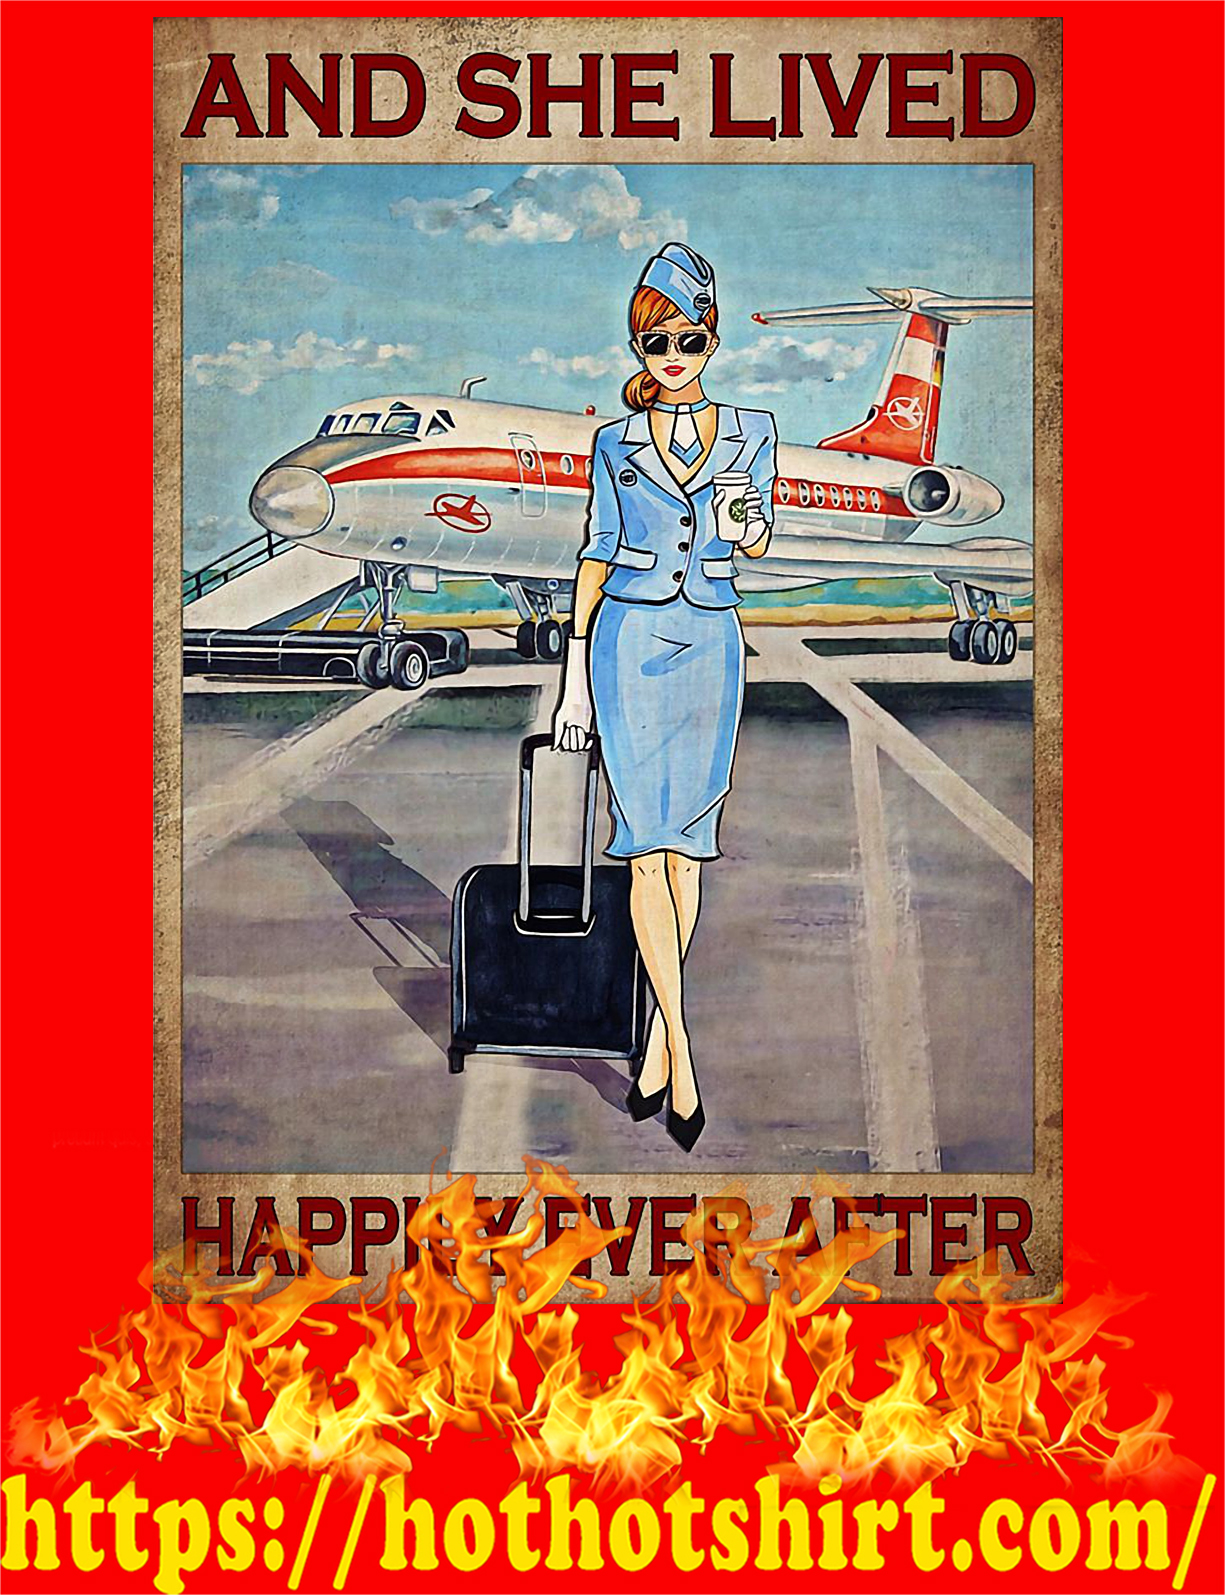 Flight Attendant And She Lived Happily Ever After Poster - 1